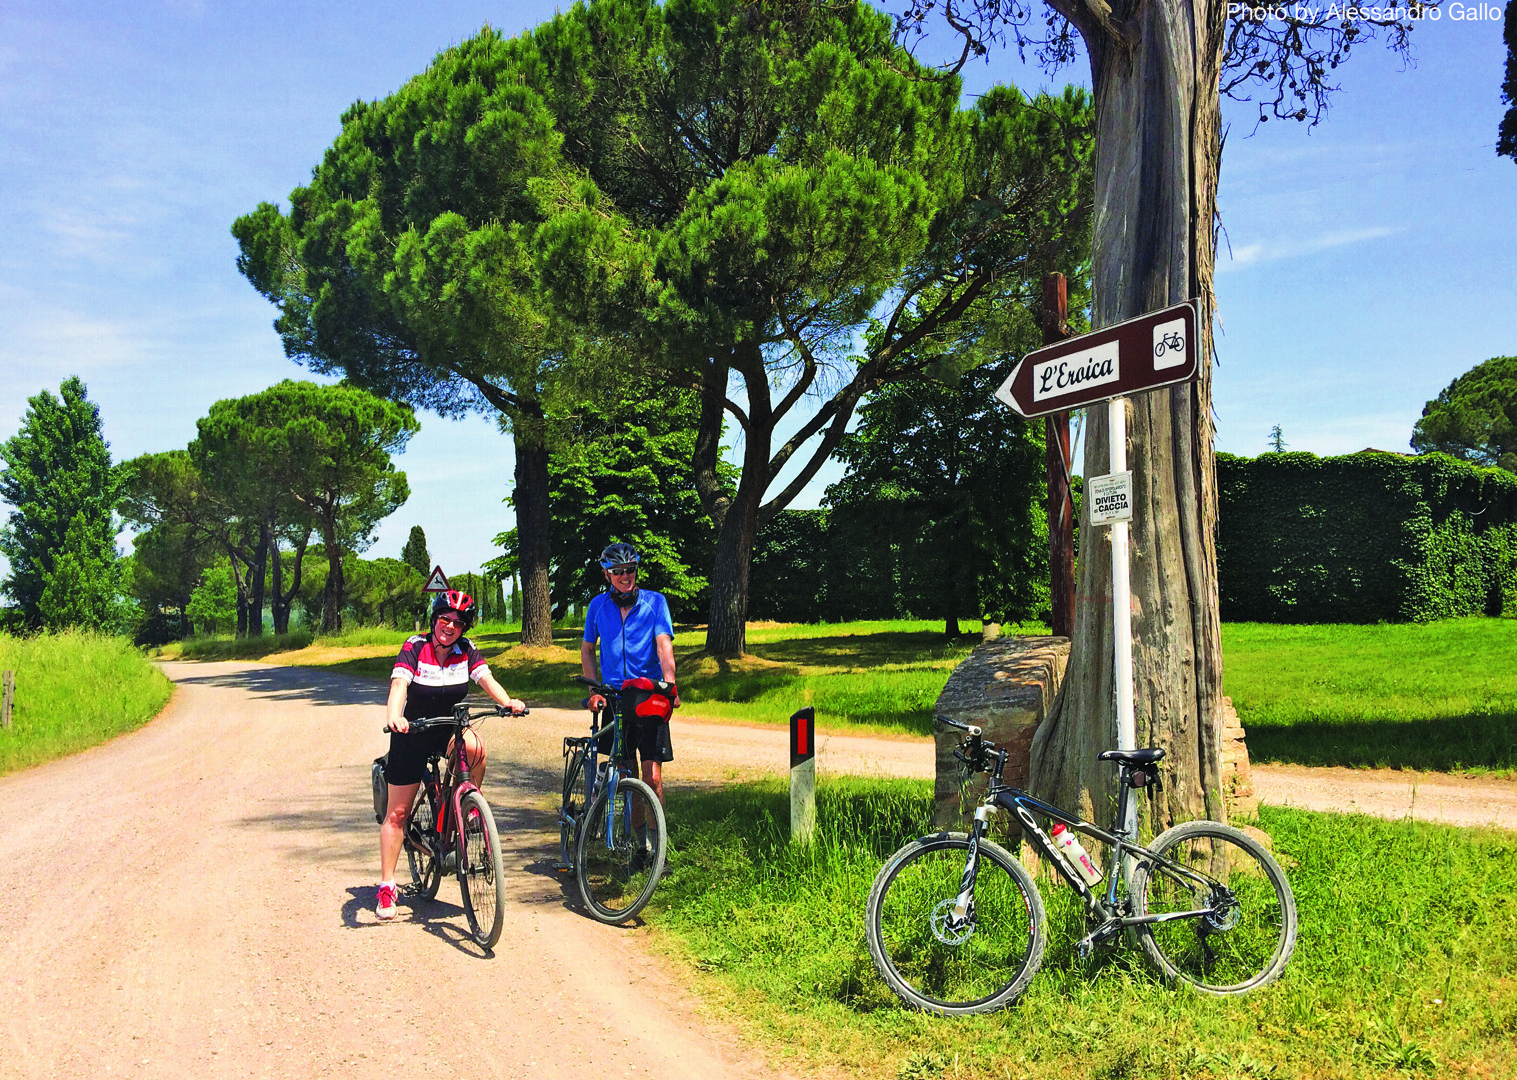 Italy-Via-Francigena-Tuscany-to-Rome-Guided-Leisure-Cycling-Holiday - Italy - Via Francigena (Tuscany to Rome) - Guided Leisure Cycling Holiday - Italia Leisure and Family Cycling